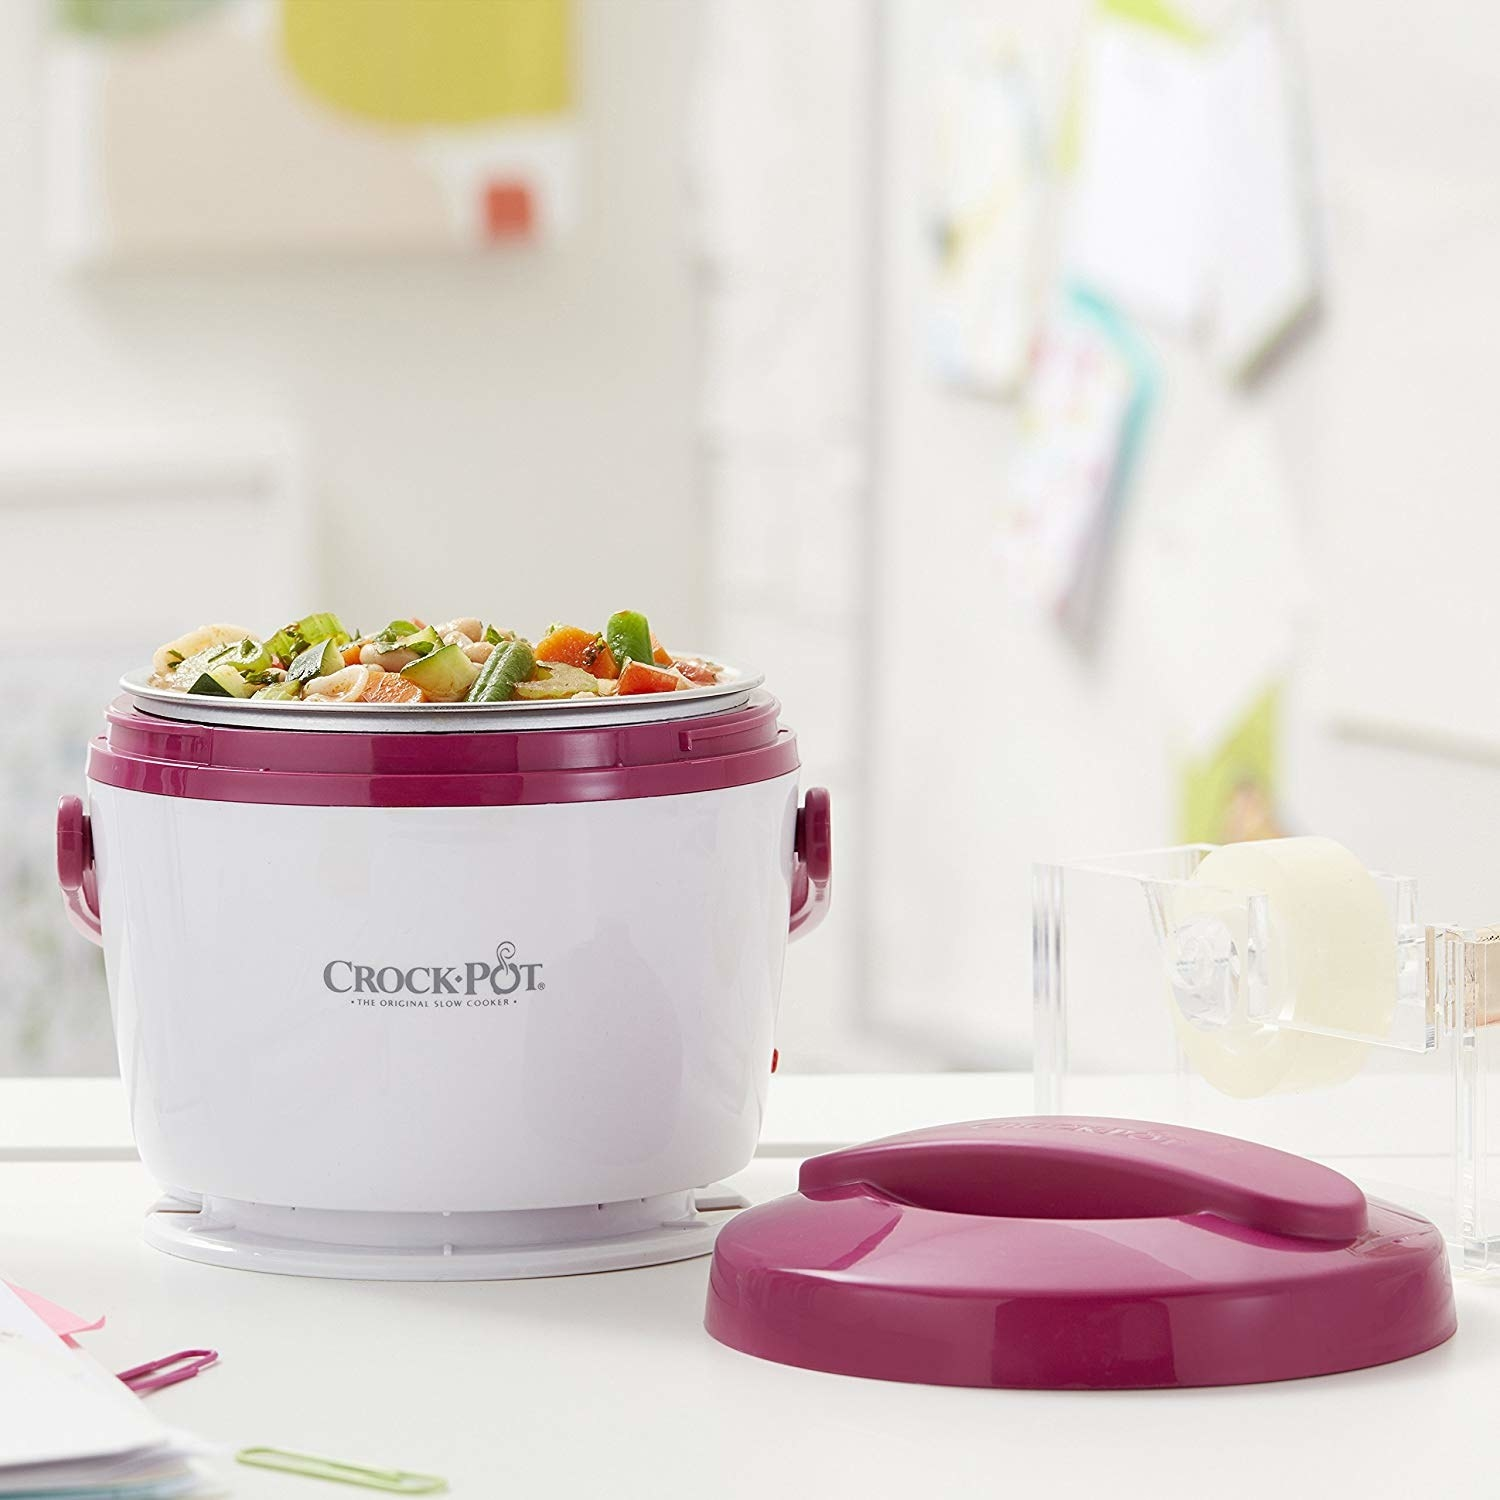 A small slow cooker with a lid on a table